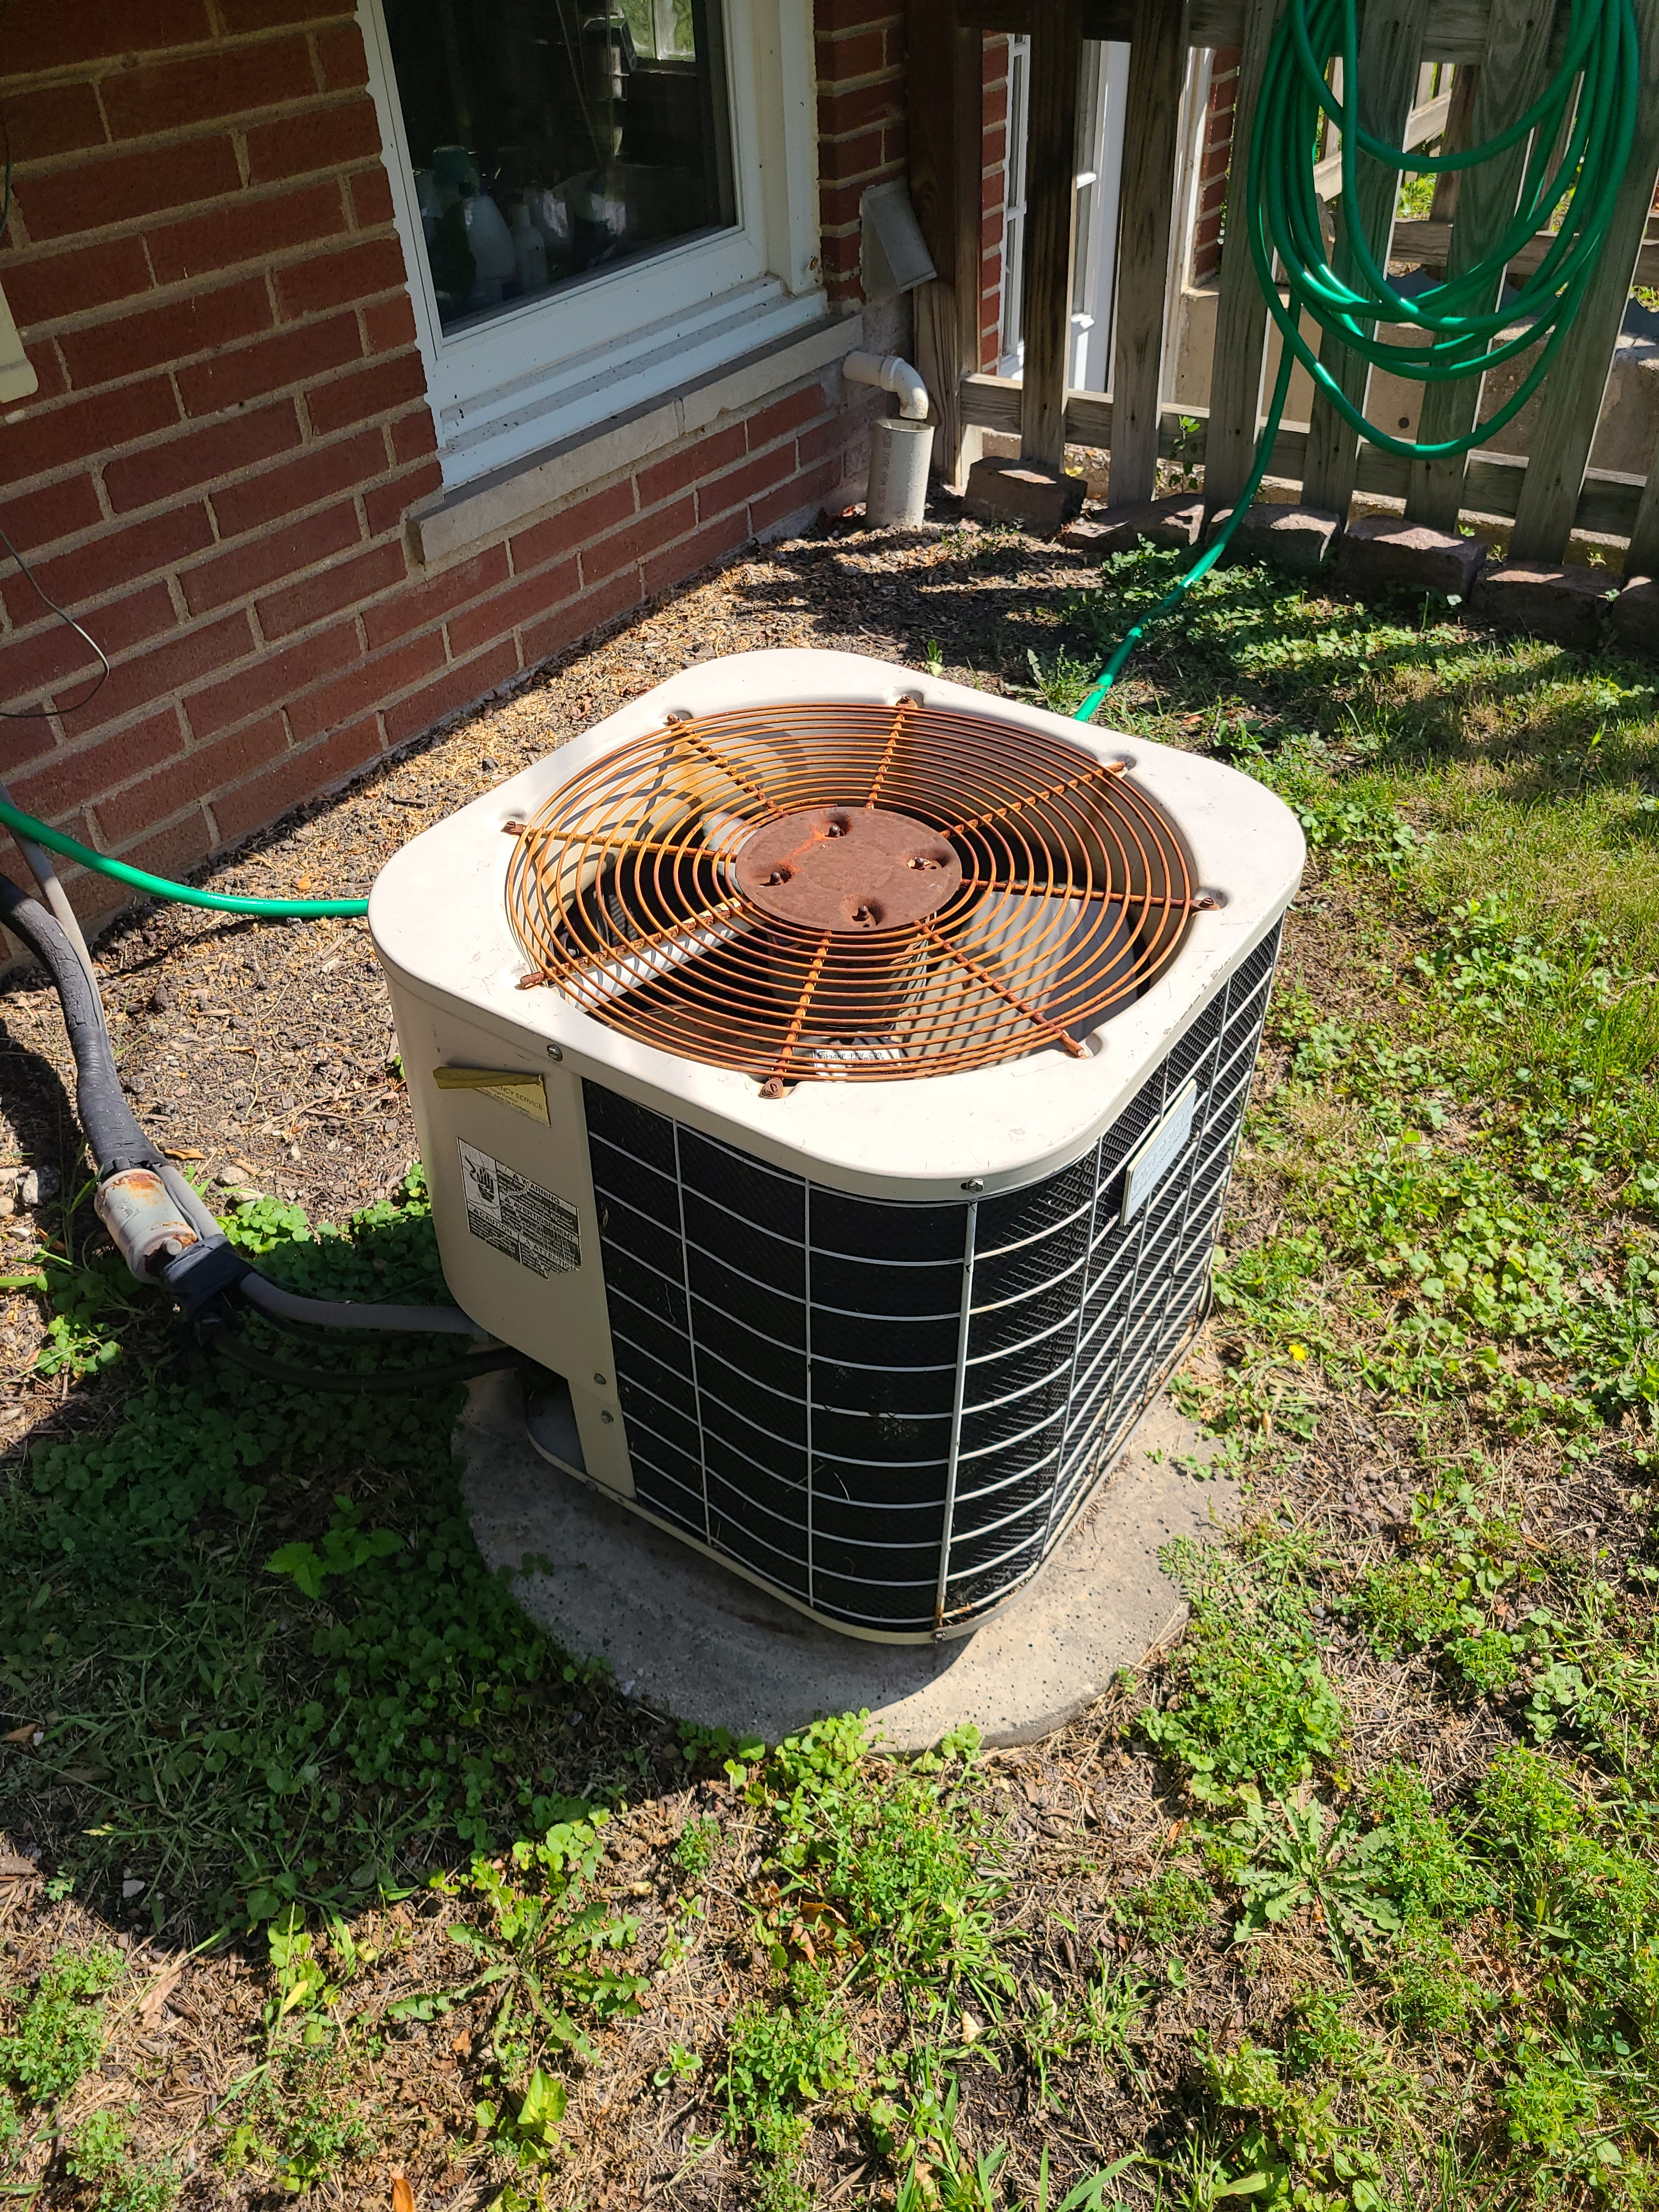 Sunner ac system tune up. System cleaned and checked and ready for summer.